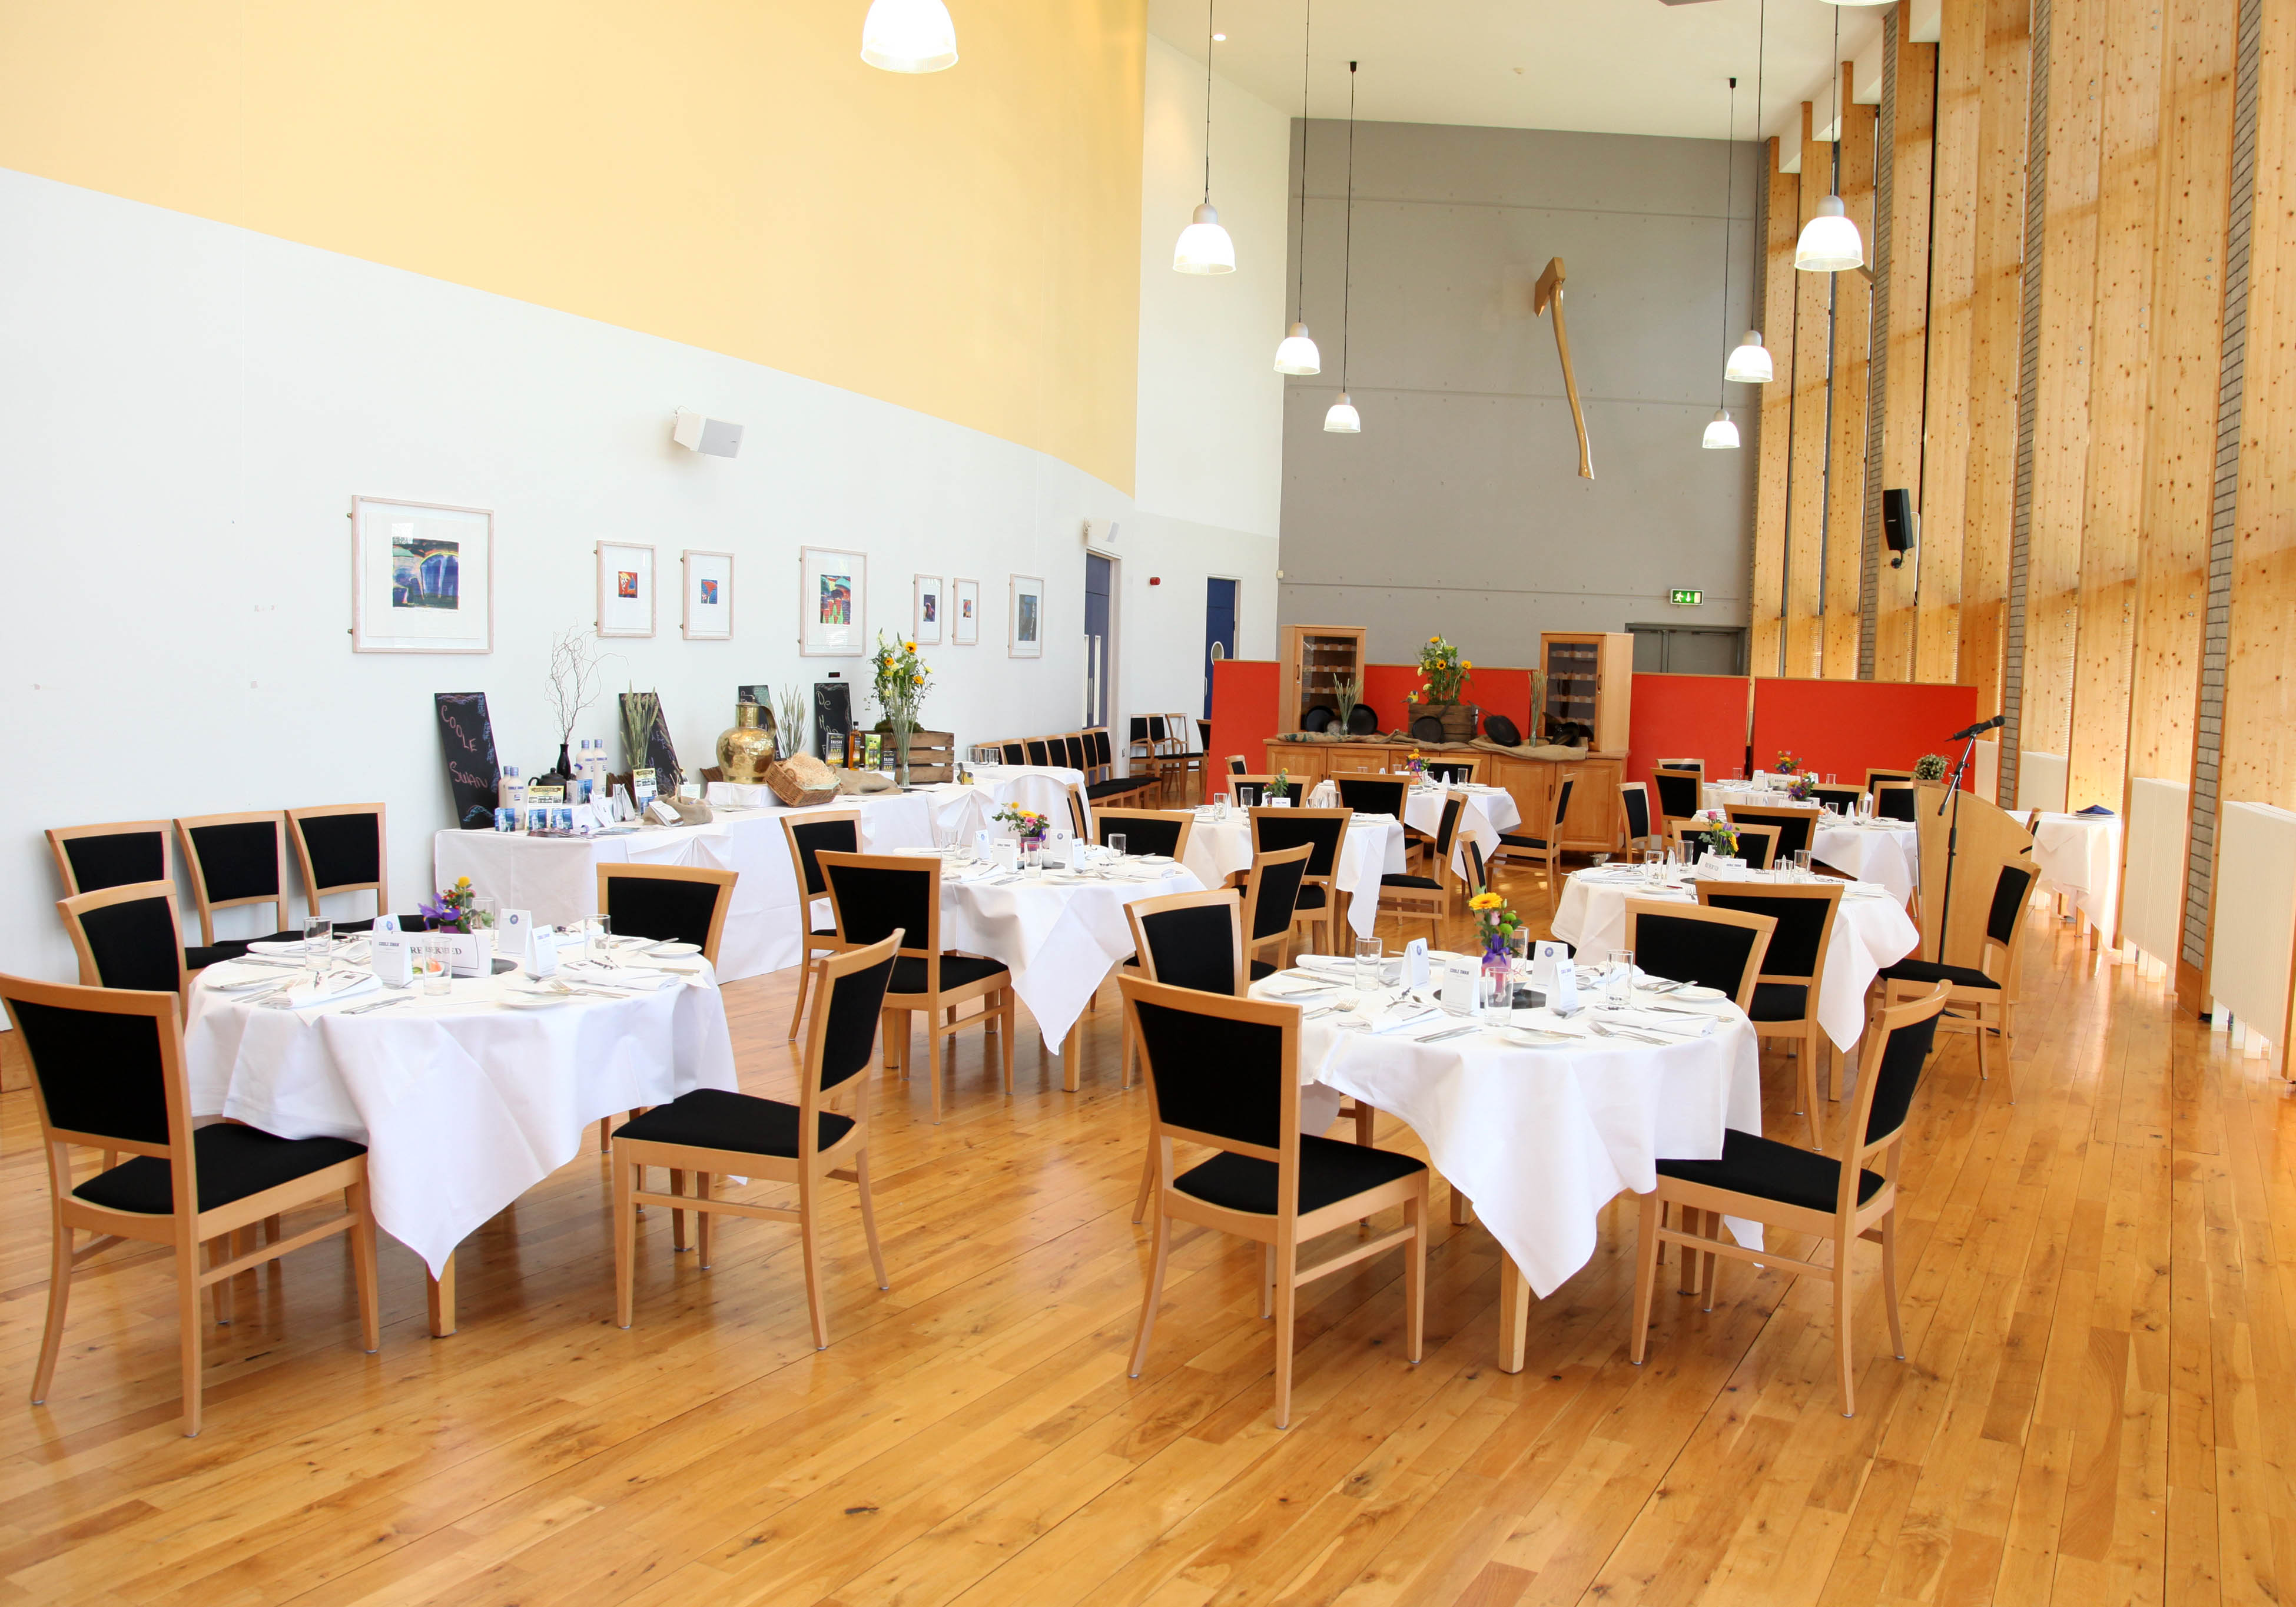 Training Restaurant in the Hospitality Building